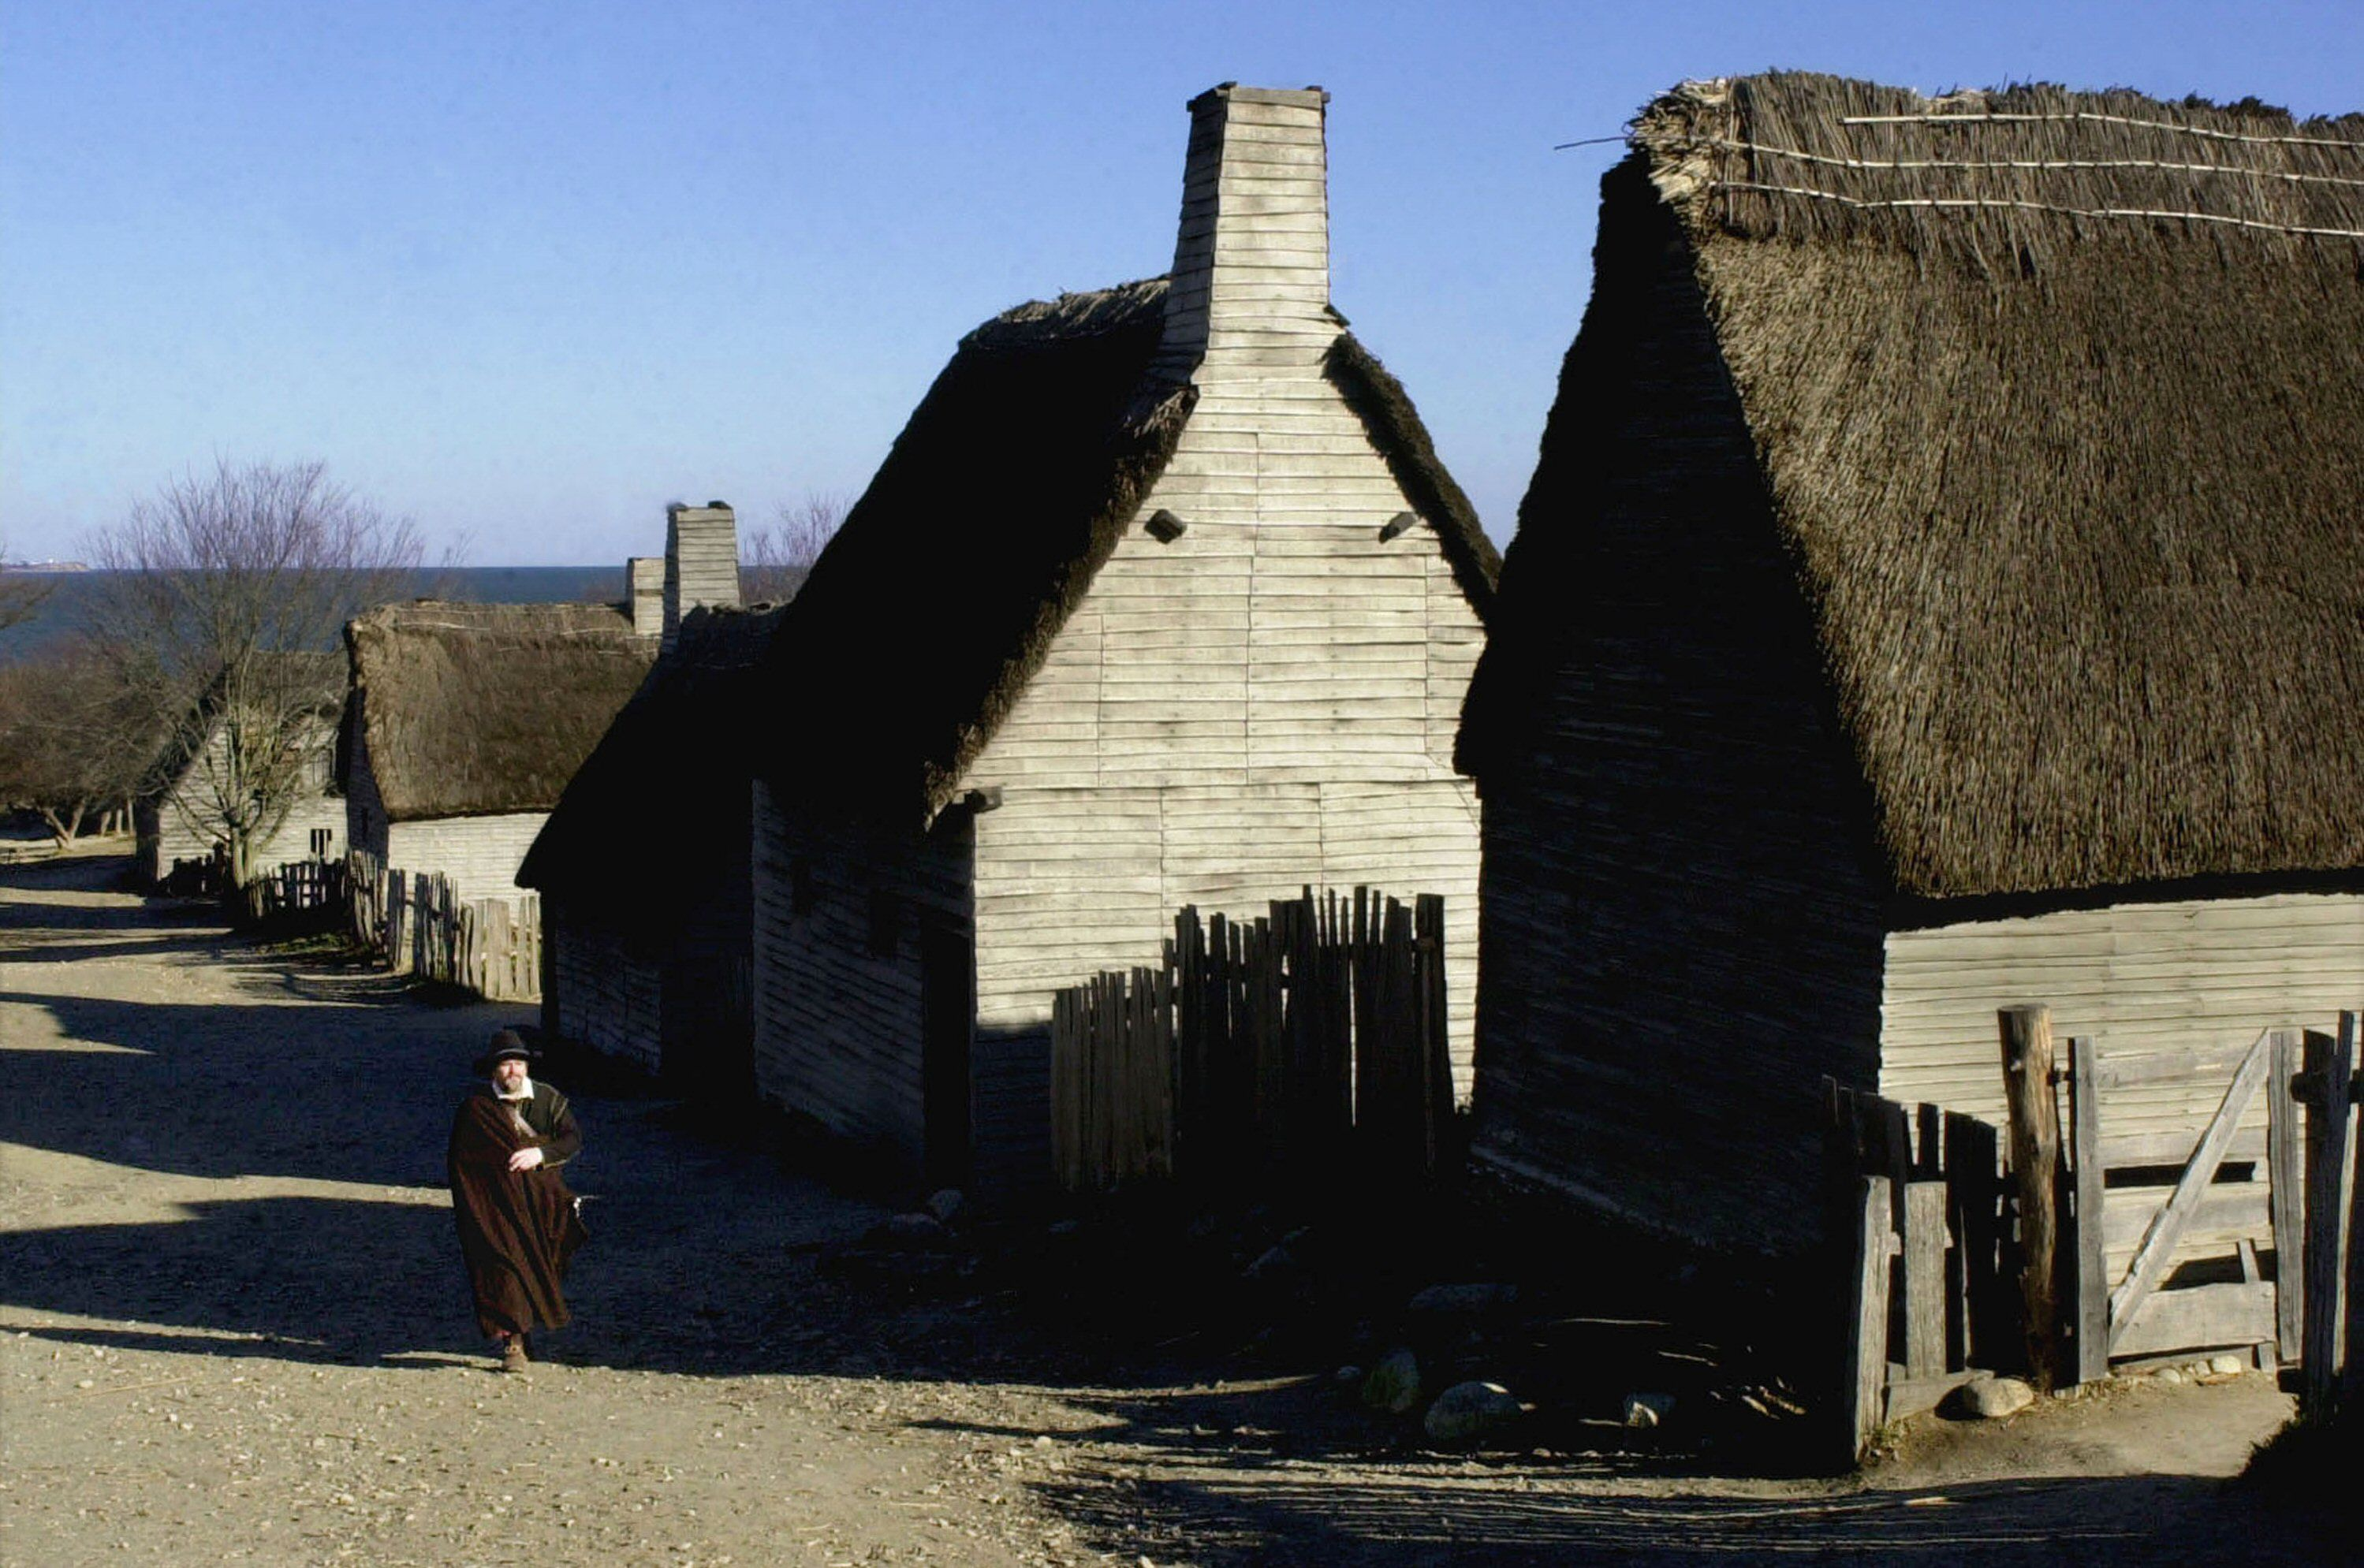 wooden homes with thatched roofs